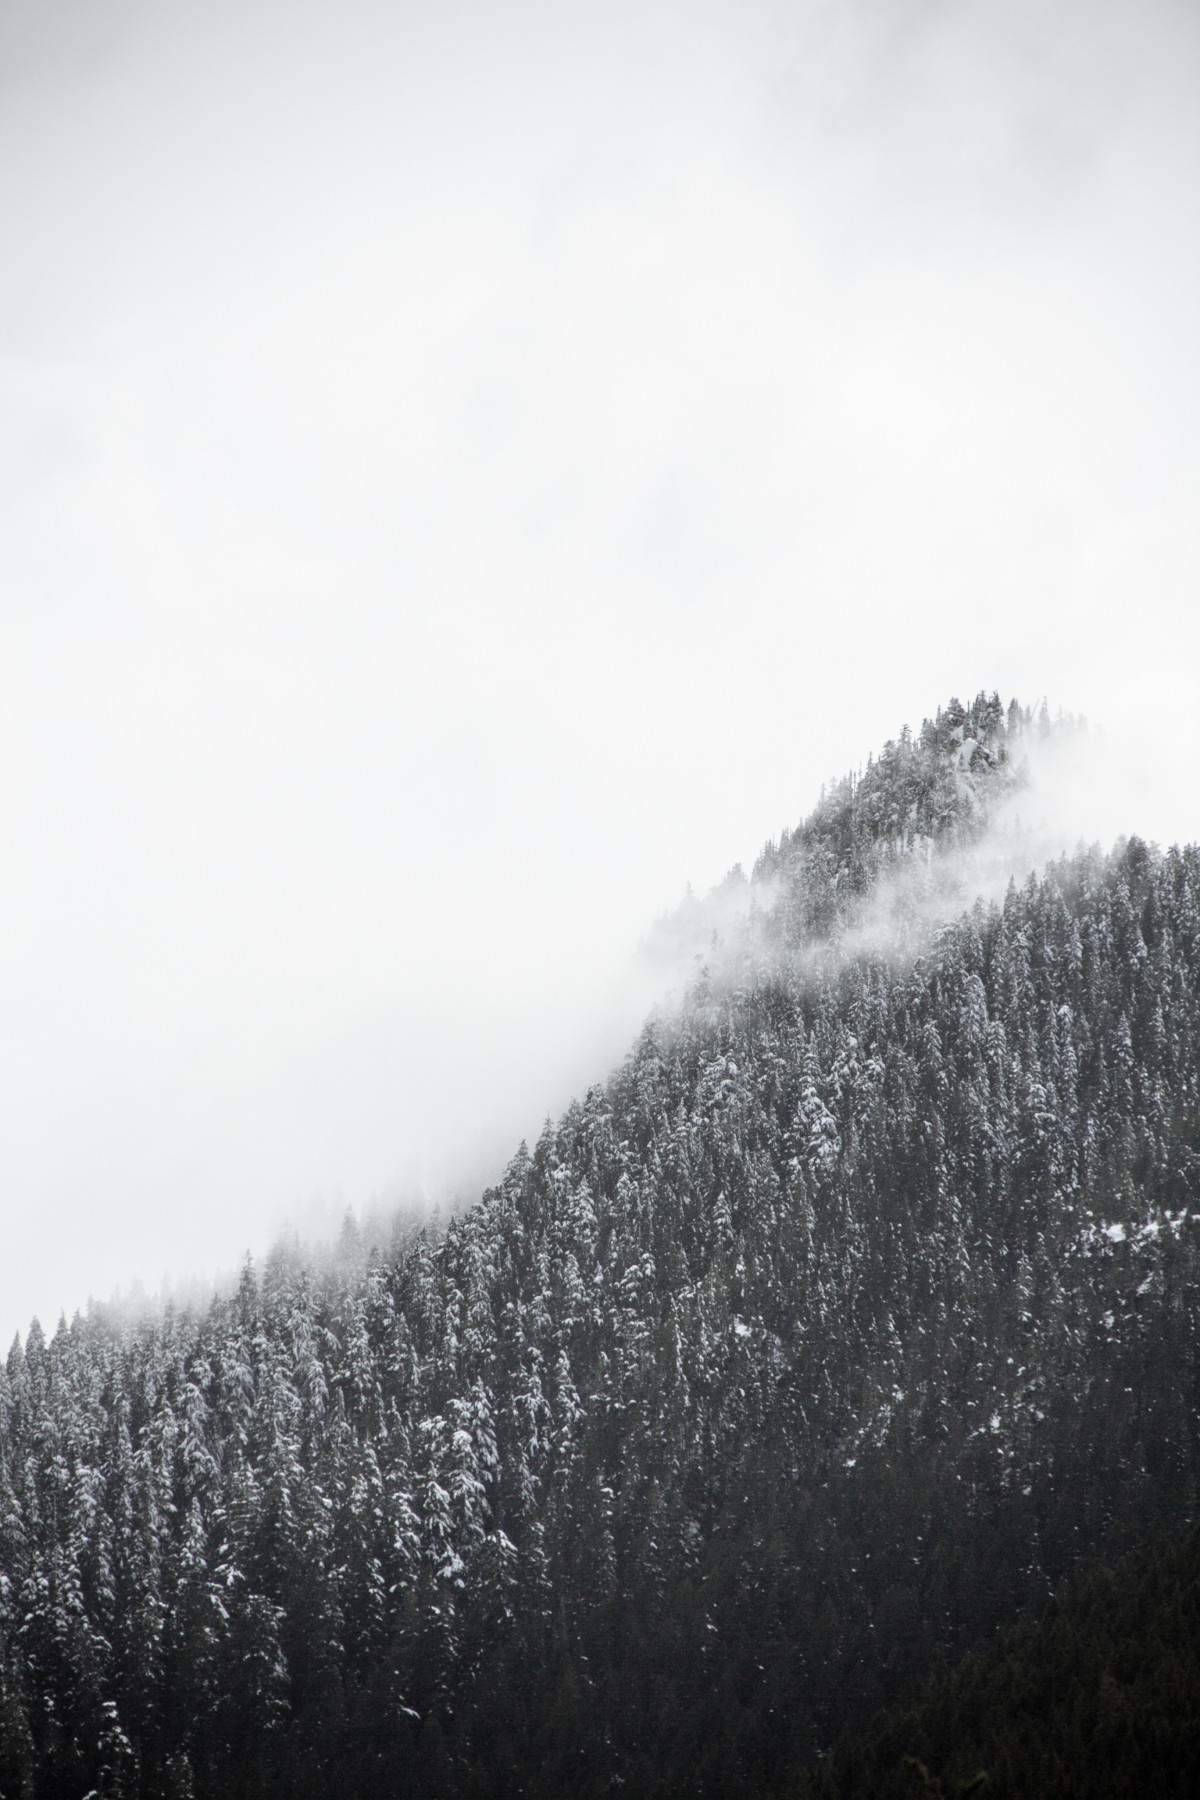 Tree Black And White Wallpaper Free Images Landscape Tree Nature Forest Mountain